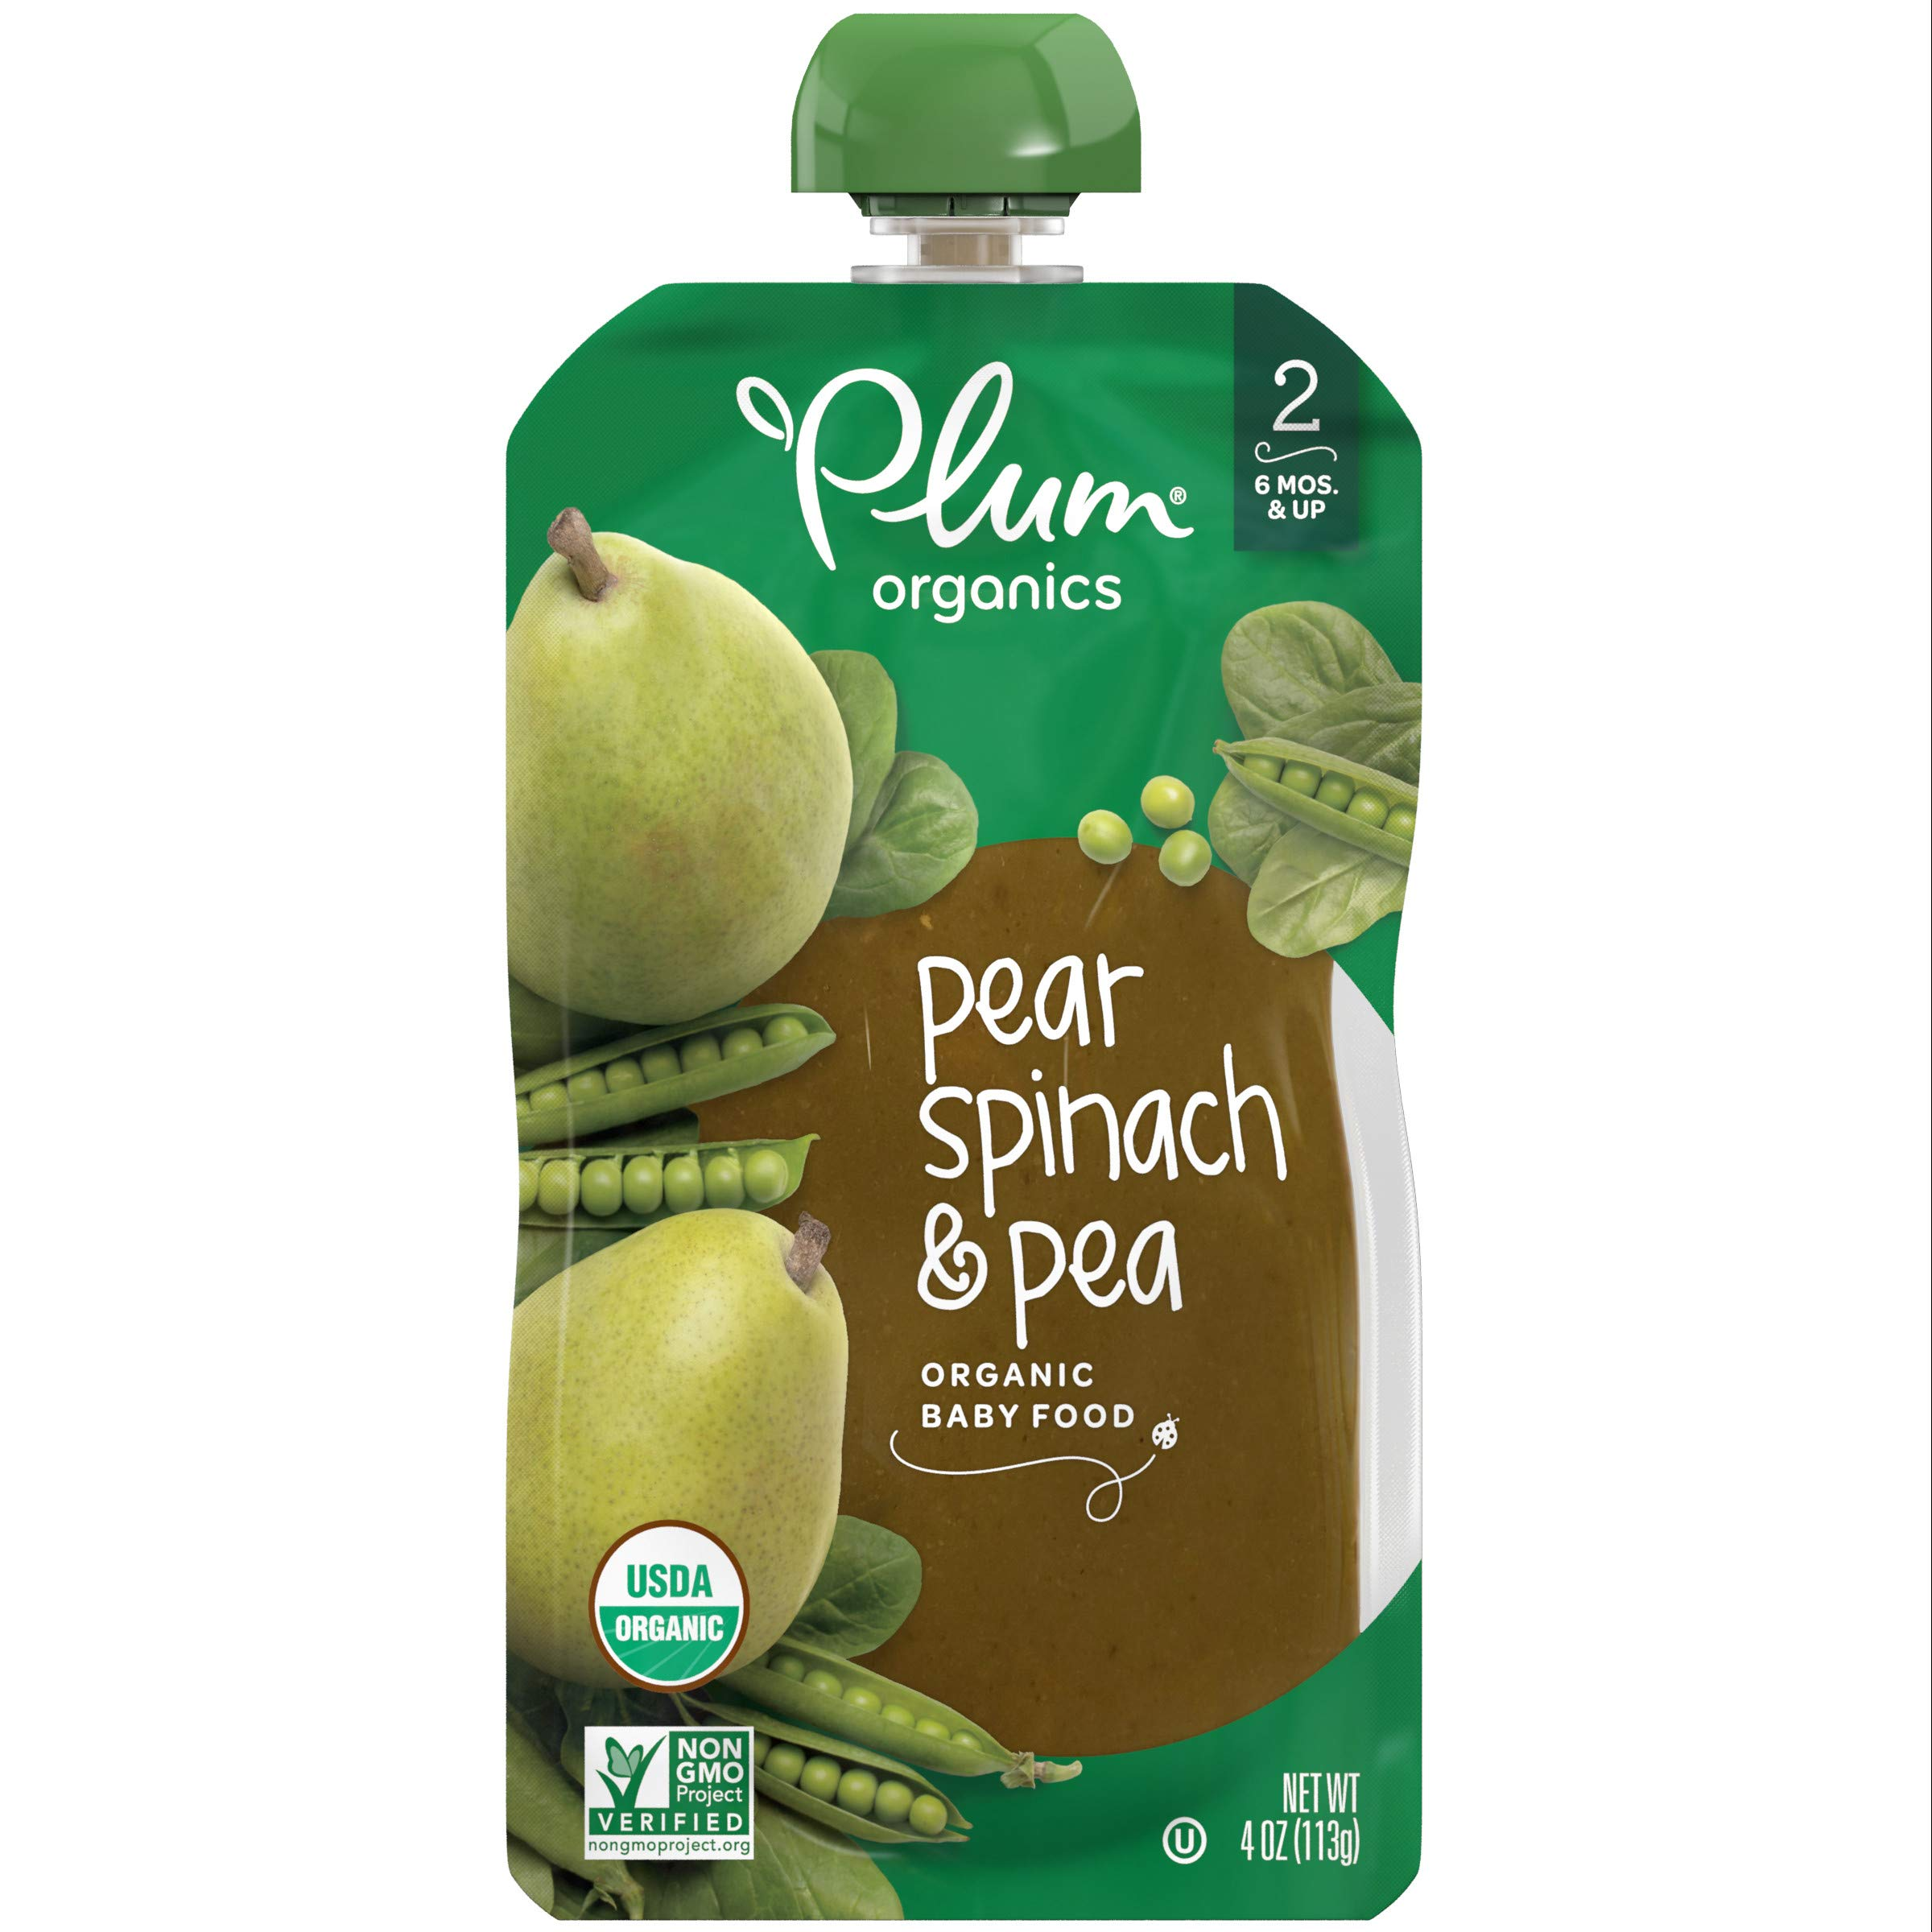 Plum Organics Stage 2, Organic Baby Food, Fruit and Veggie Variety Pack, 4 ounce pouch, Pack of 18 (Packaging May Vary) by Plum Organics (Image #4)